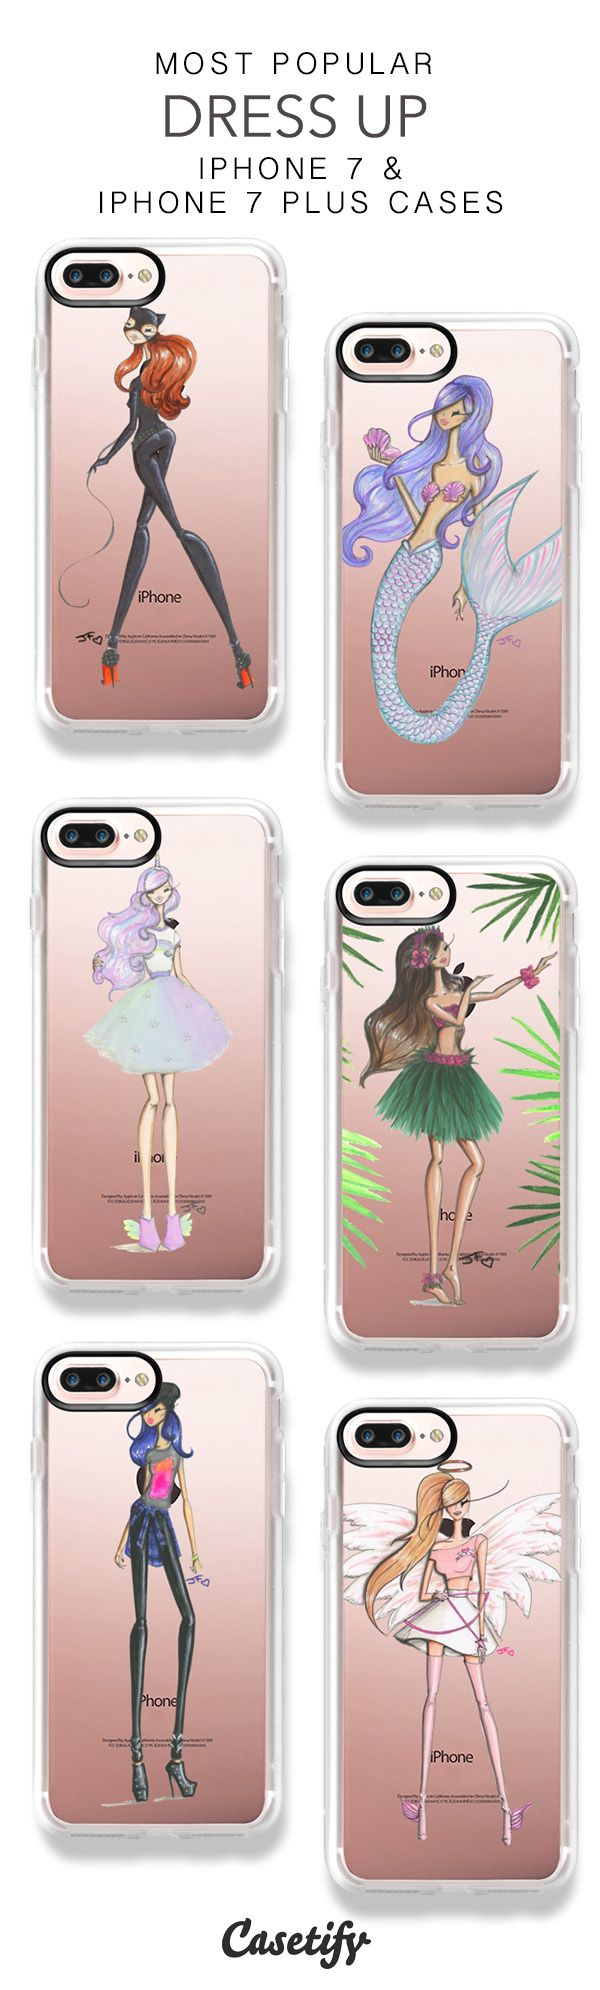 Most Popular Dress Up iPhone 7 Cases & iPhone 7 Plus Cases here > https://www.casetify.com/jfillustrations/collection?